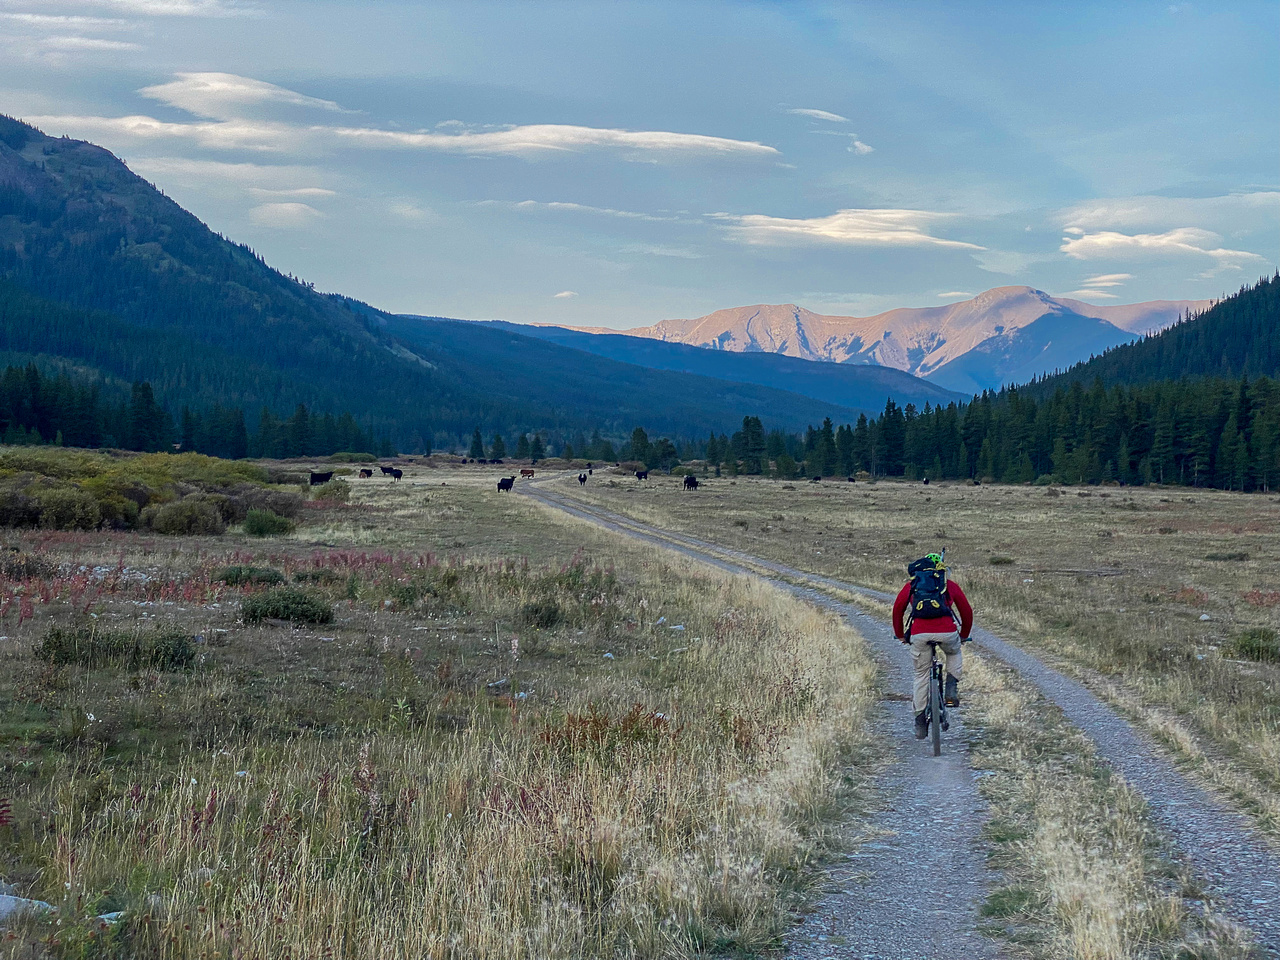 Biking back along the wide Cataract Creek trail. Note the cows and mount Burke.